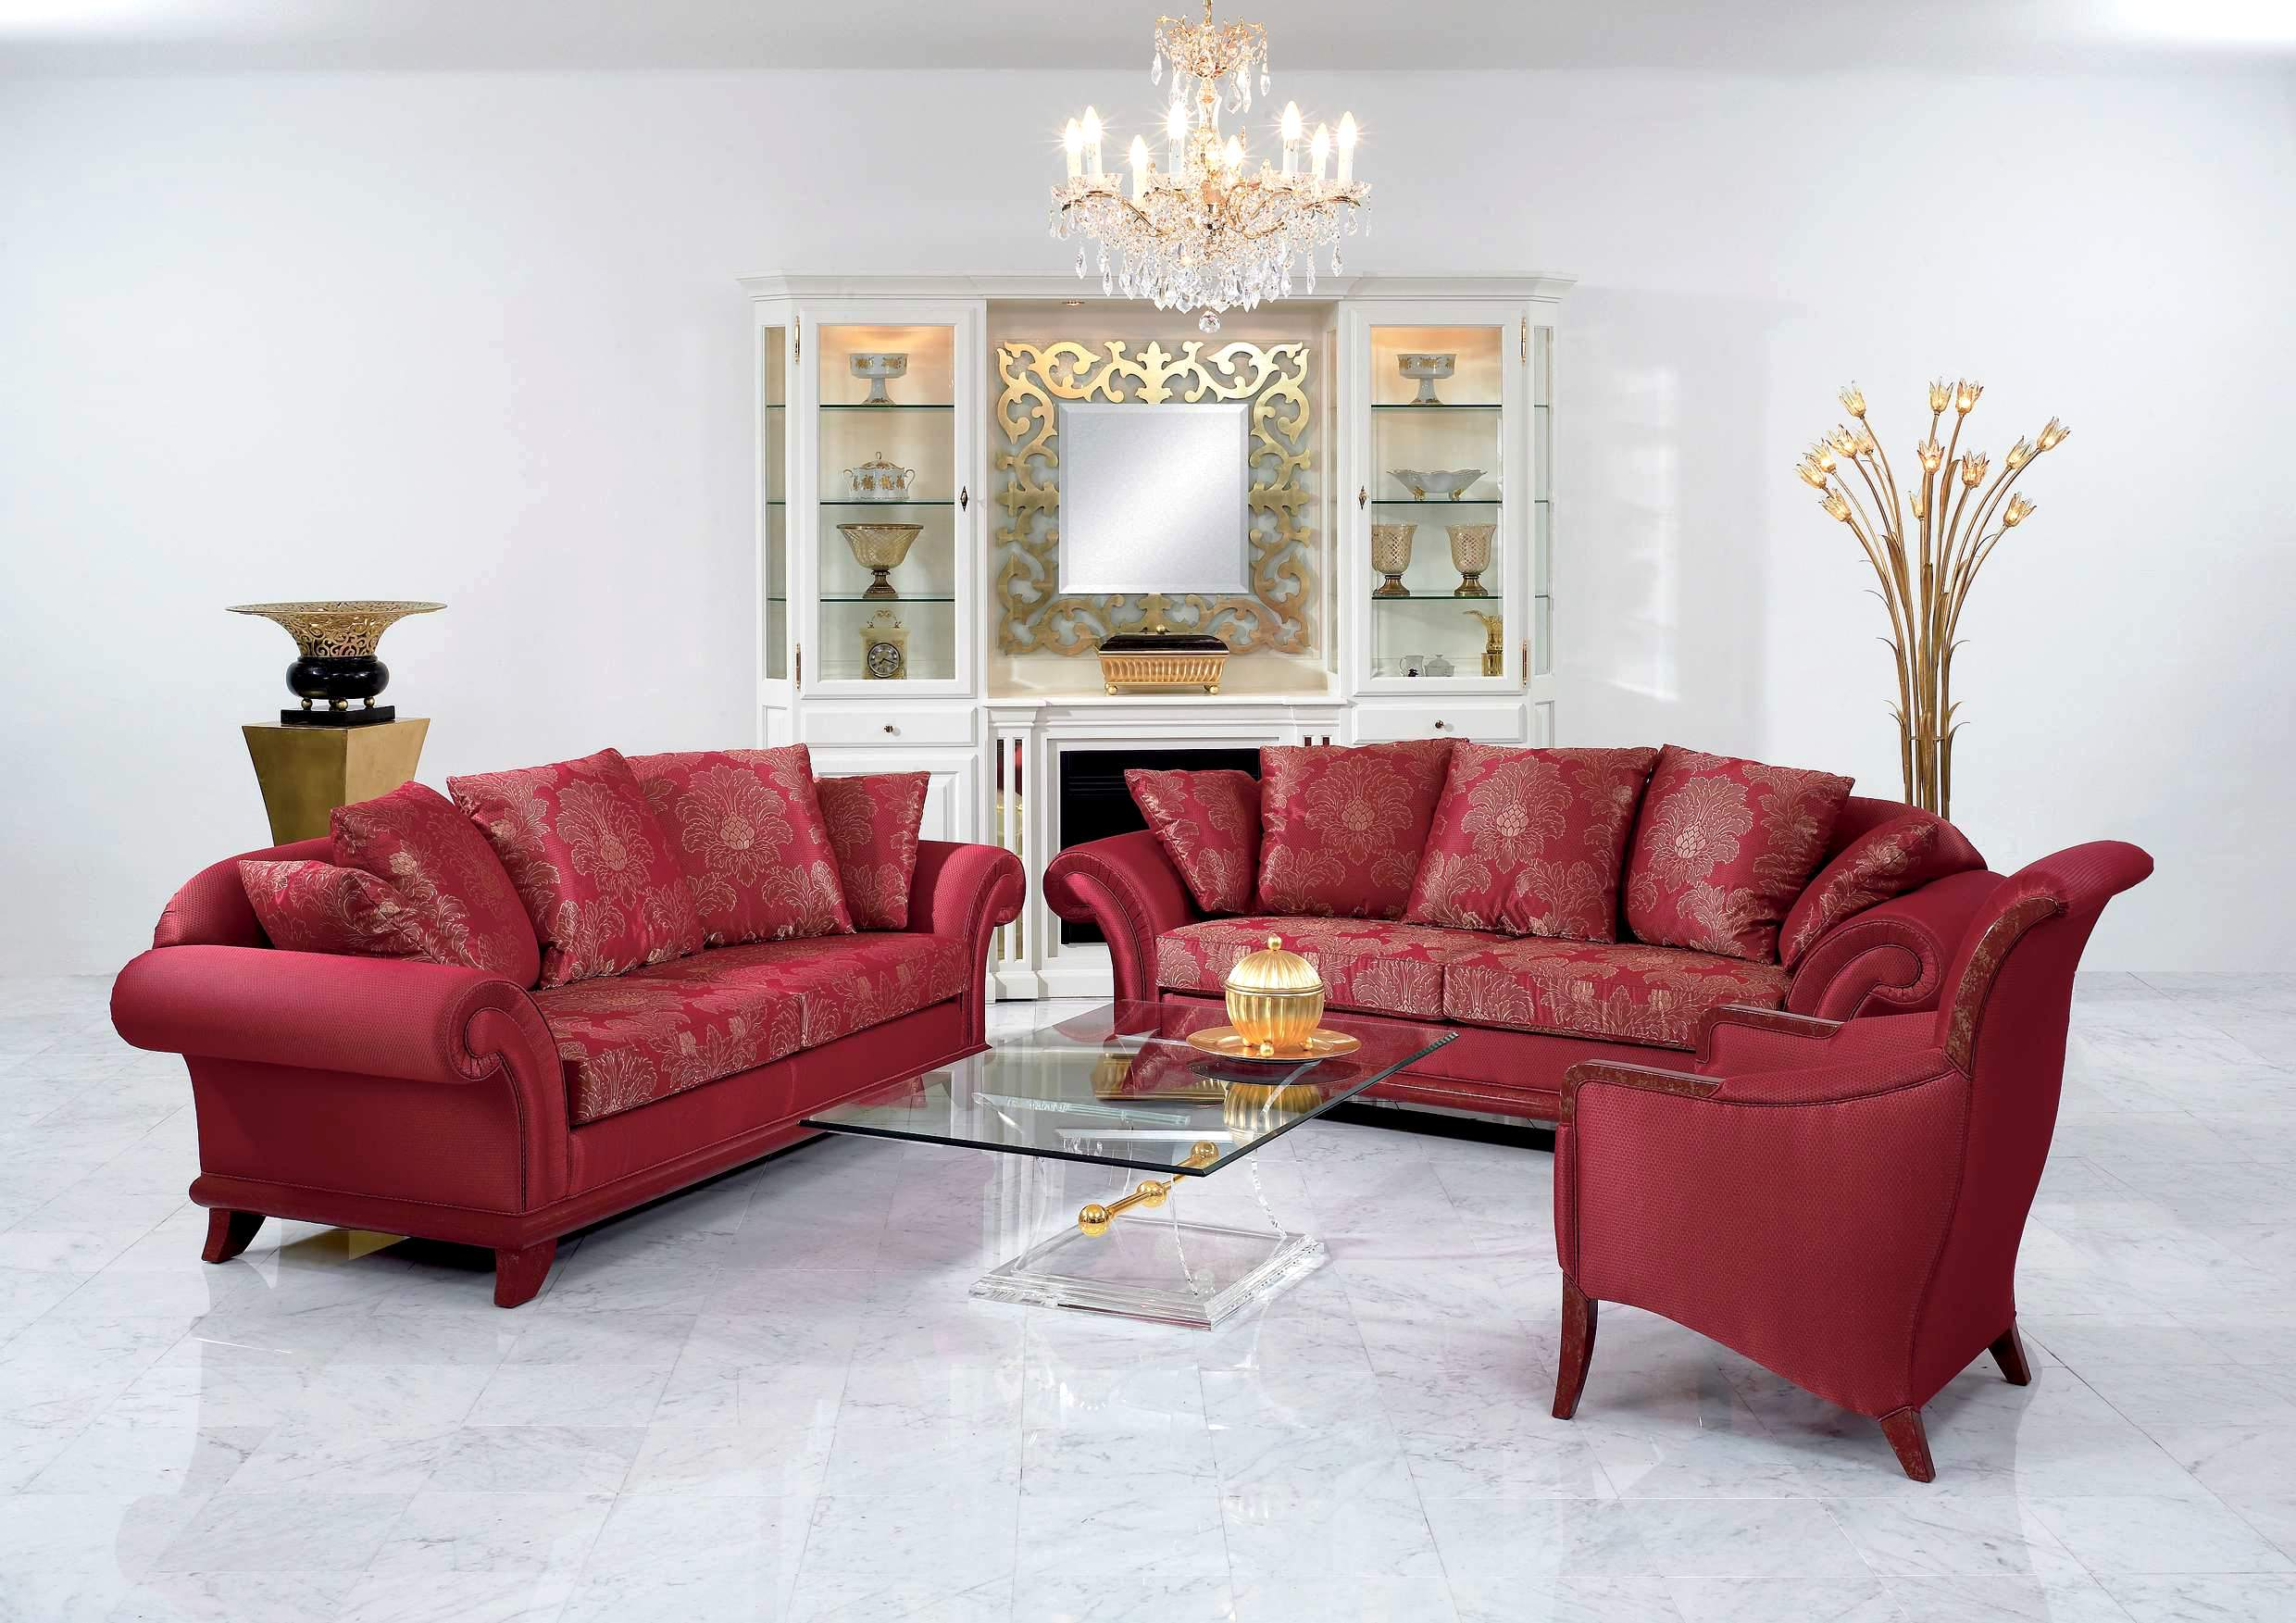 D cor tips to plan your living room my decorative for Sitting room interior